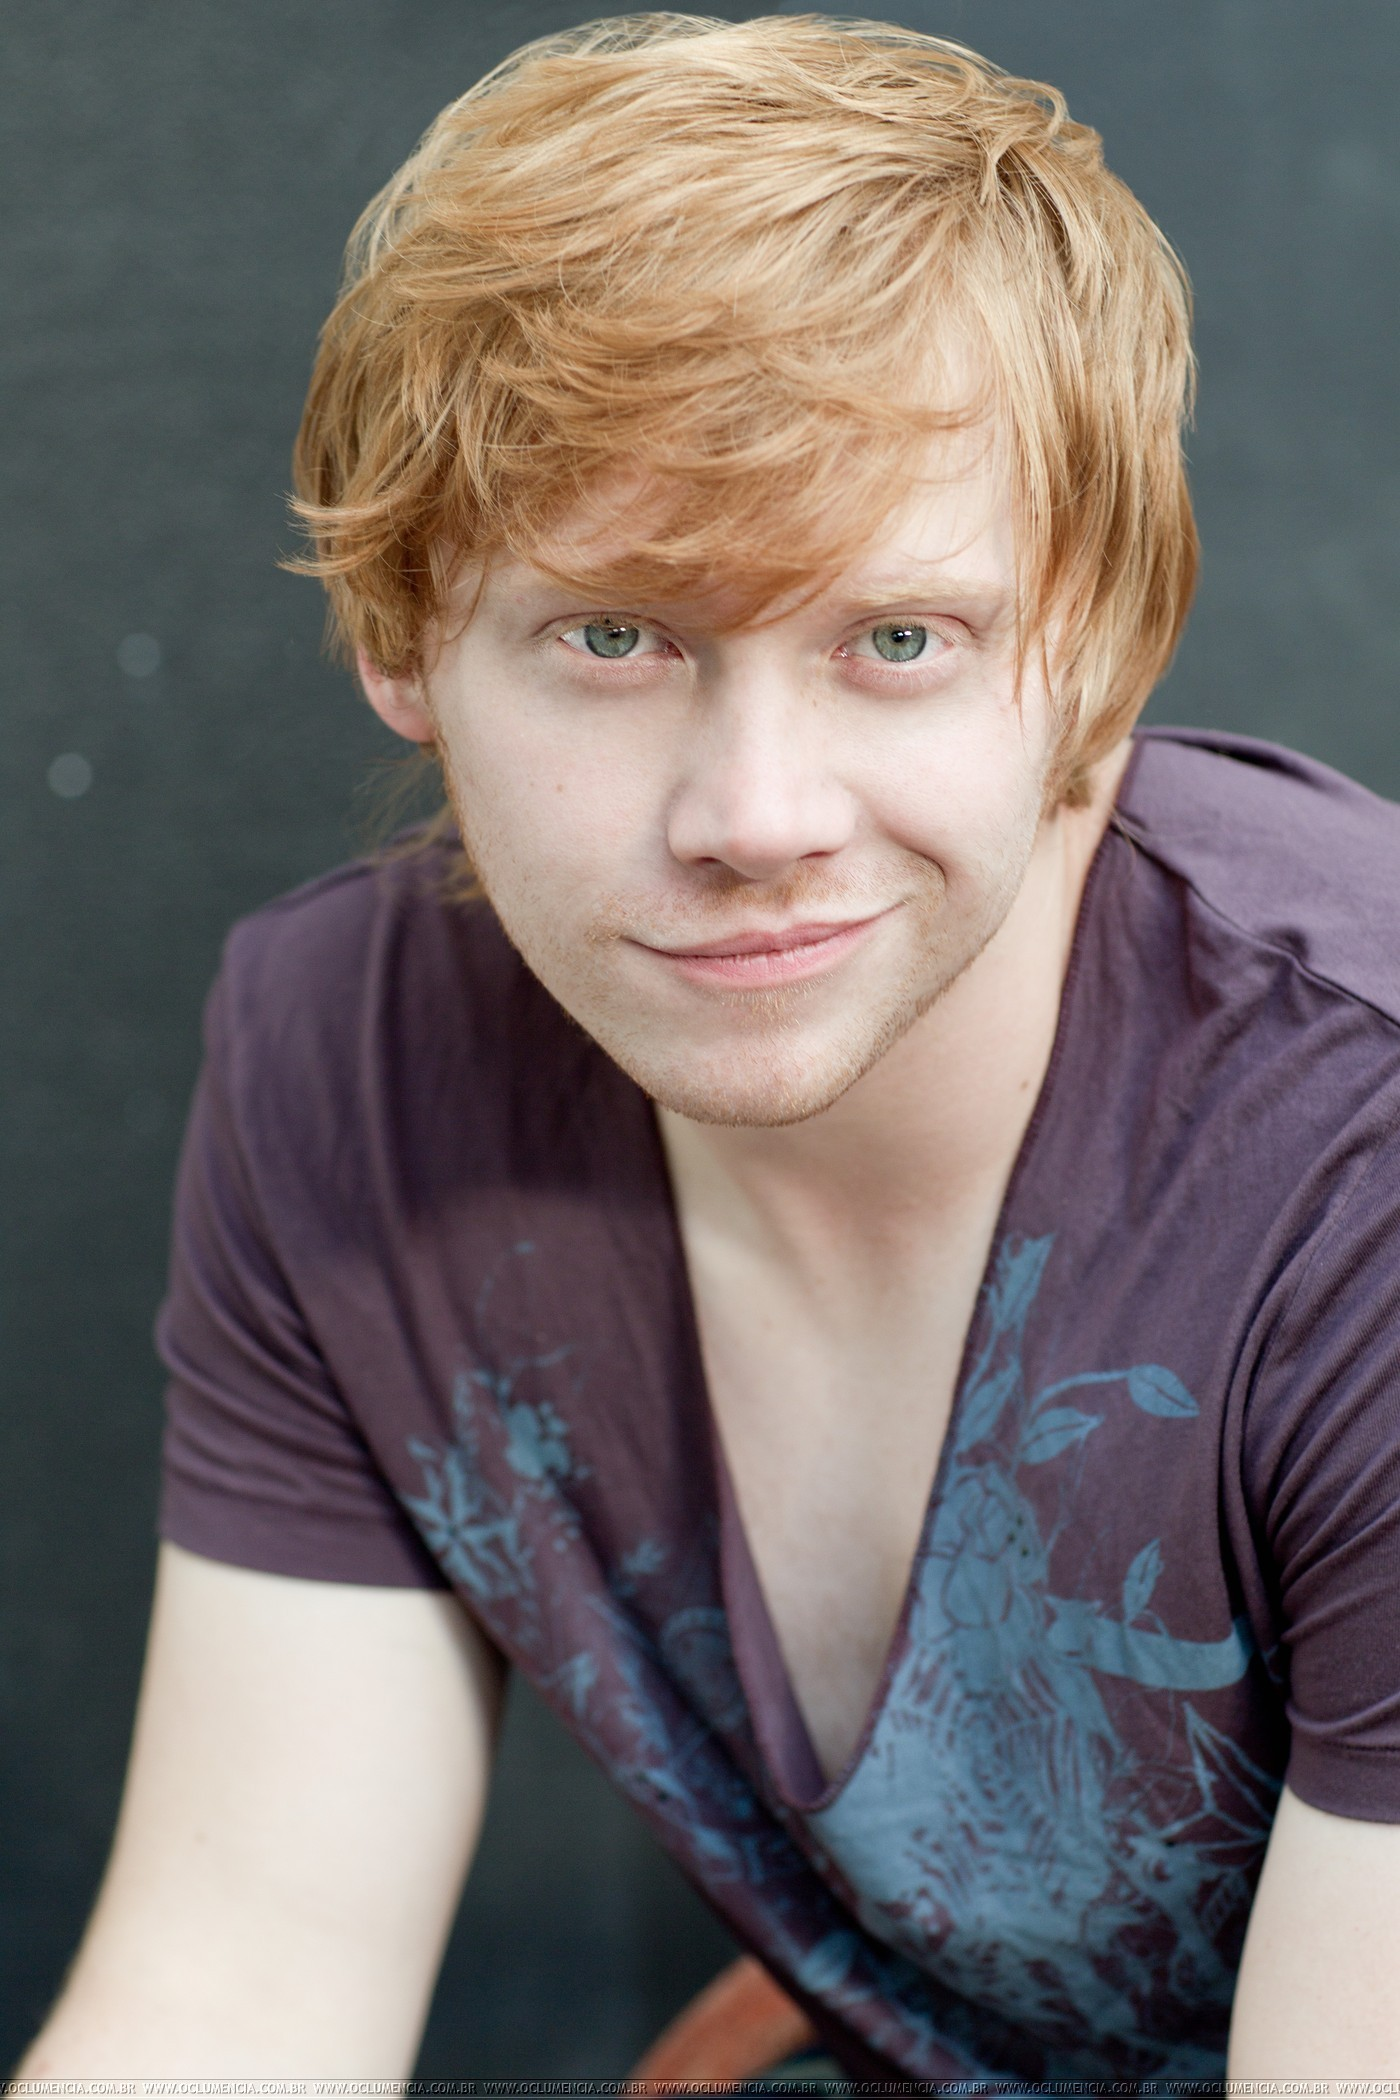 Rupert Grint Photoshoot HQ - Rupert Grint Photo (18630786) - Fanpop Rupert Grint